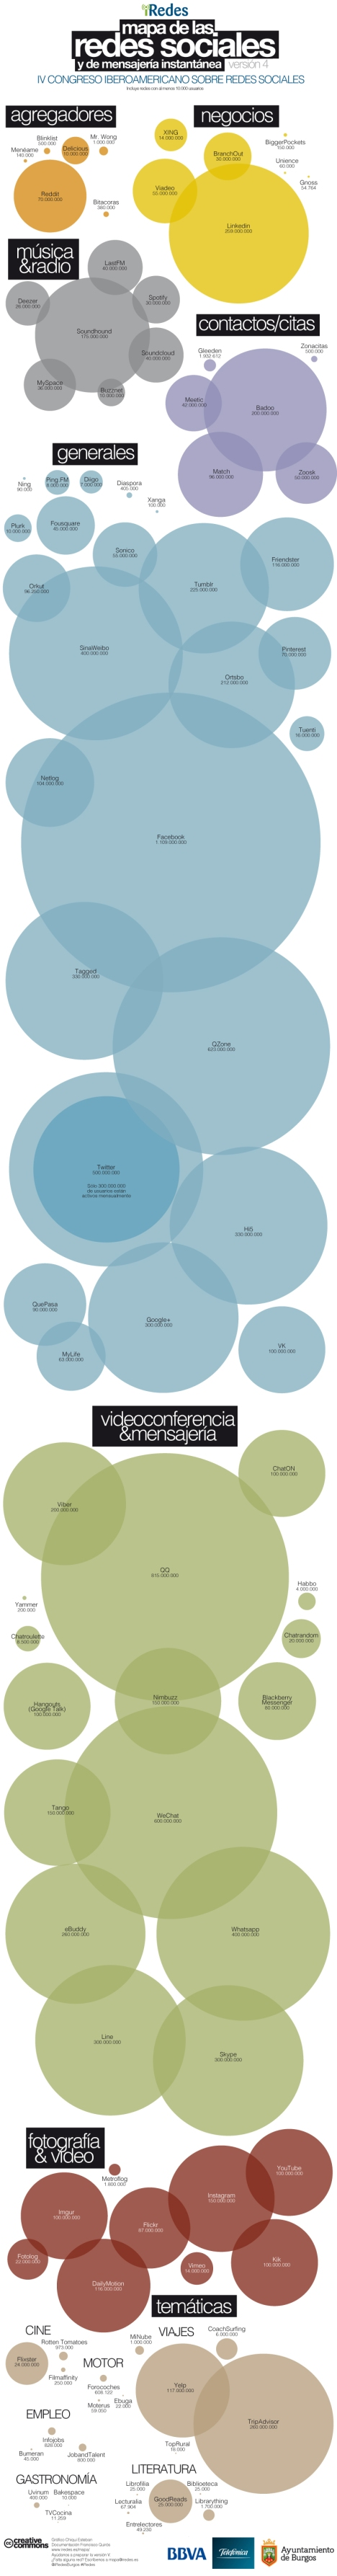 mapa redes sociales iredes